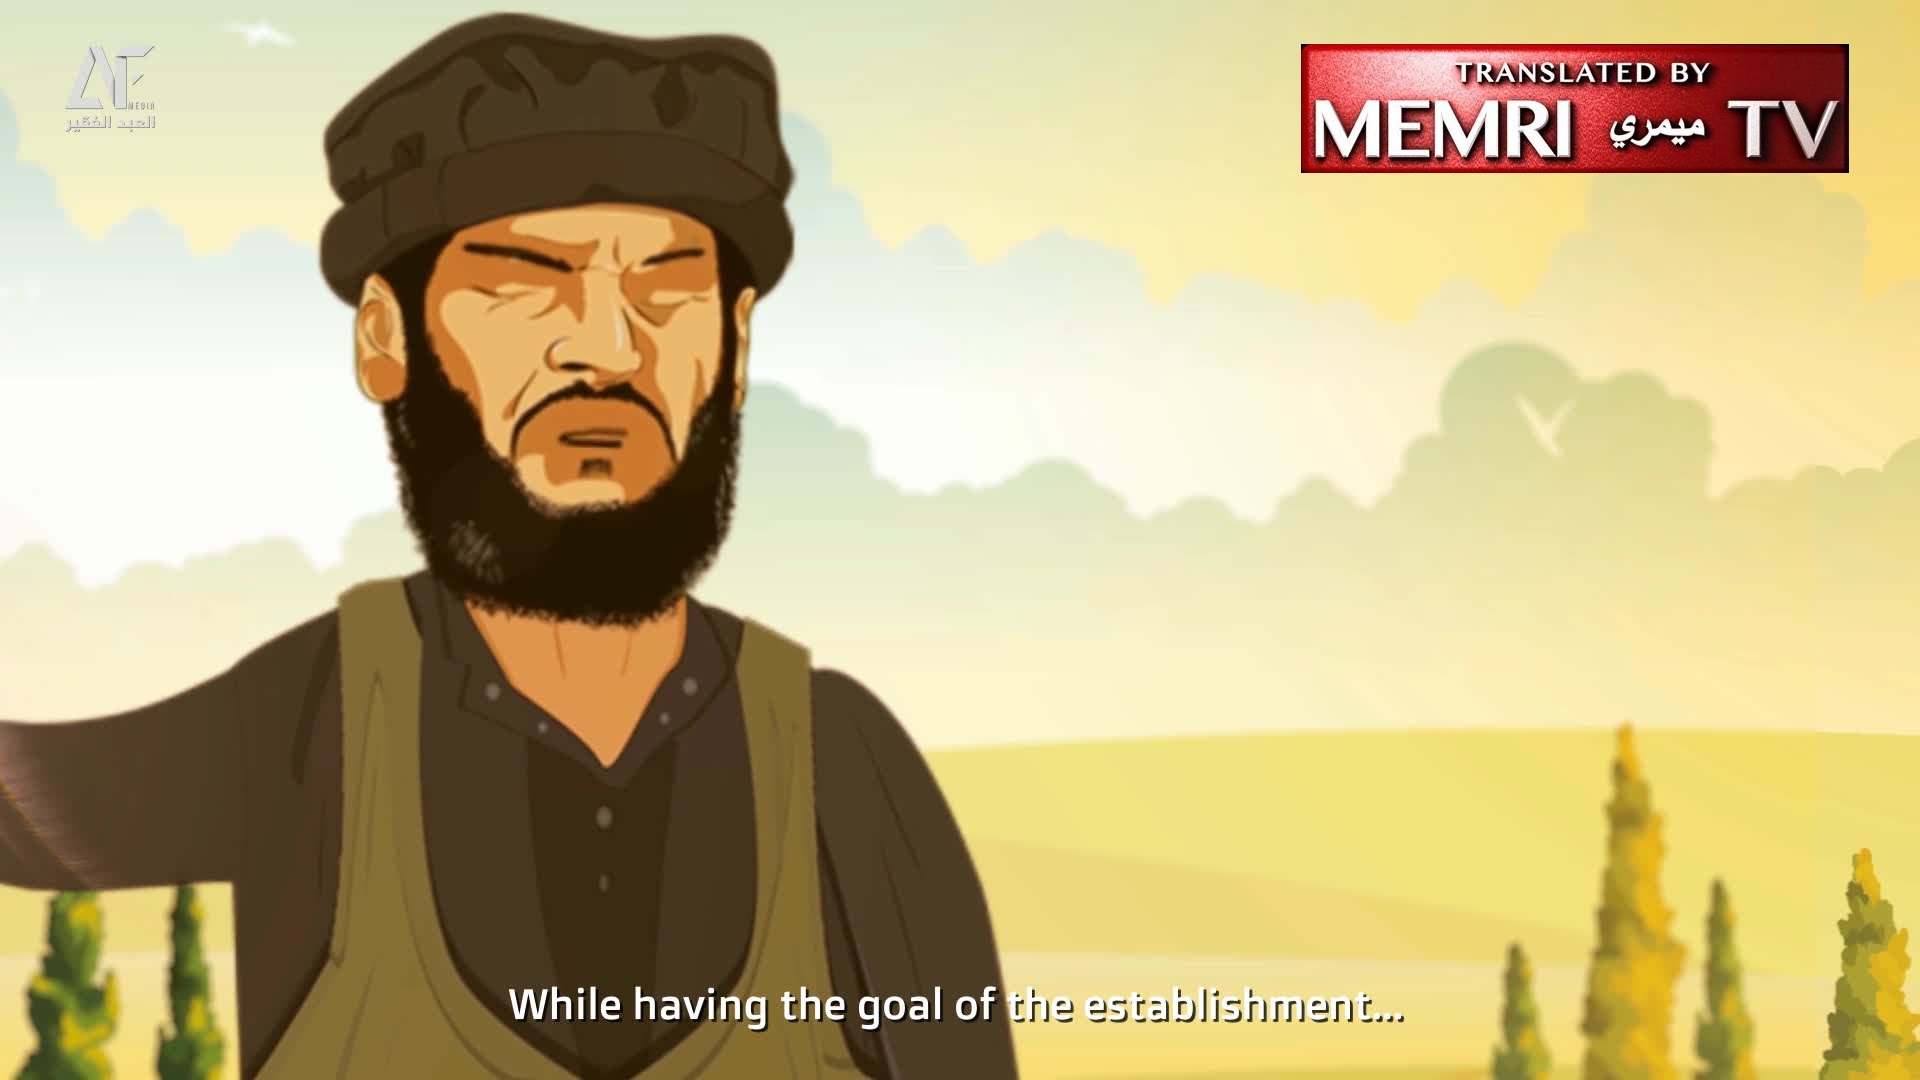 Pro-ISIS Media Group Releases Animated Biography of Abu Muhammad Al-Adnani